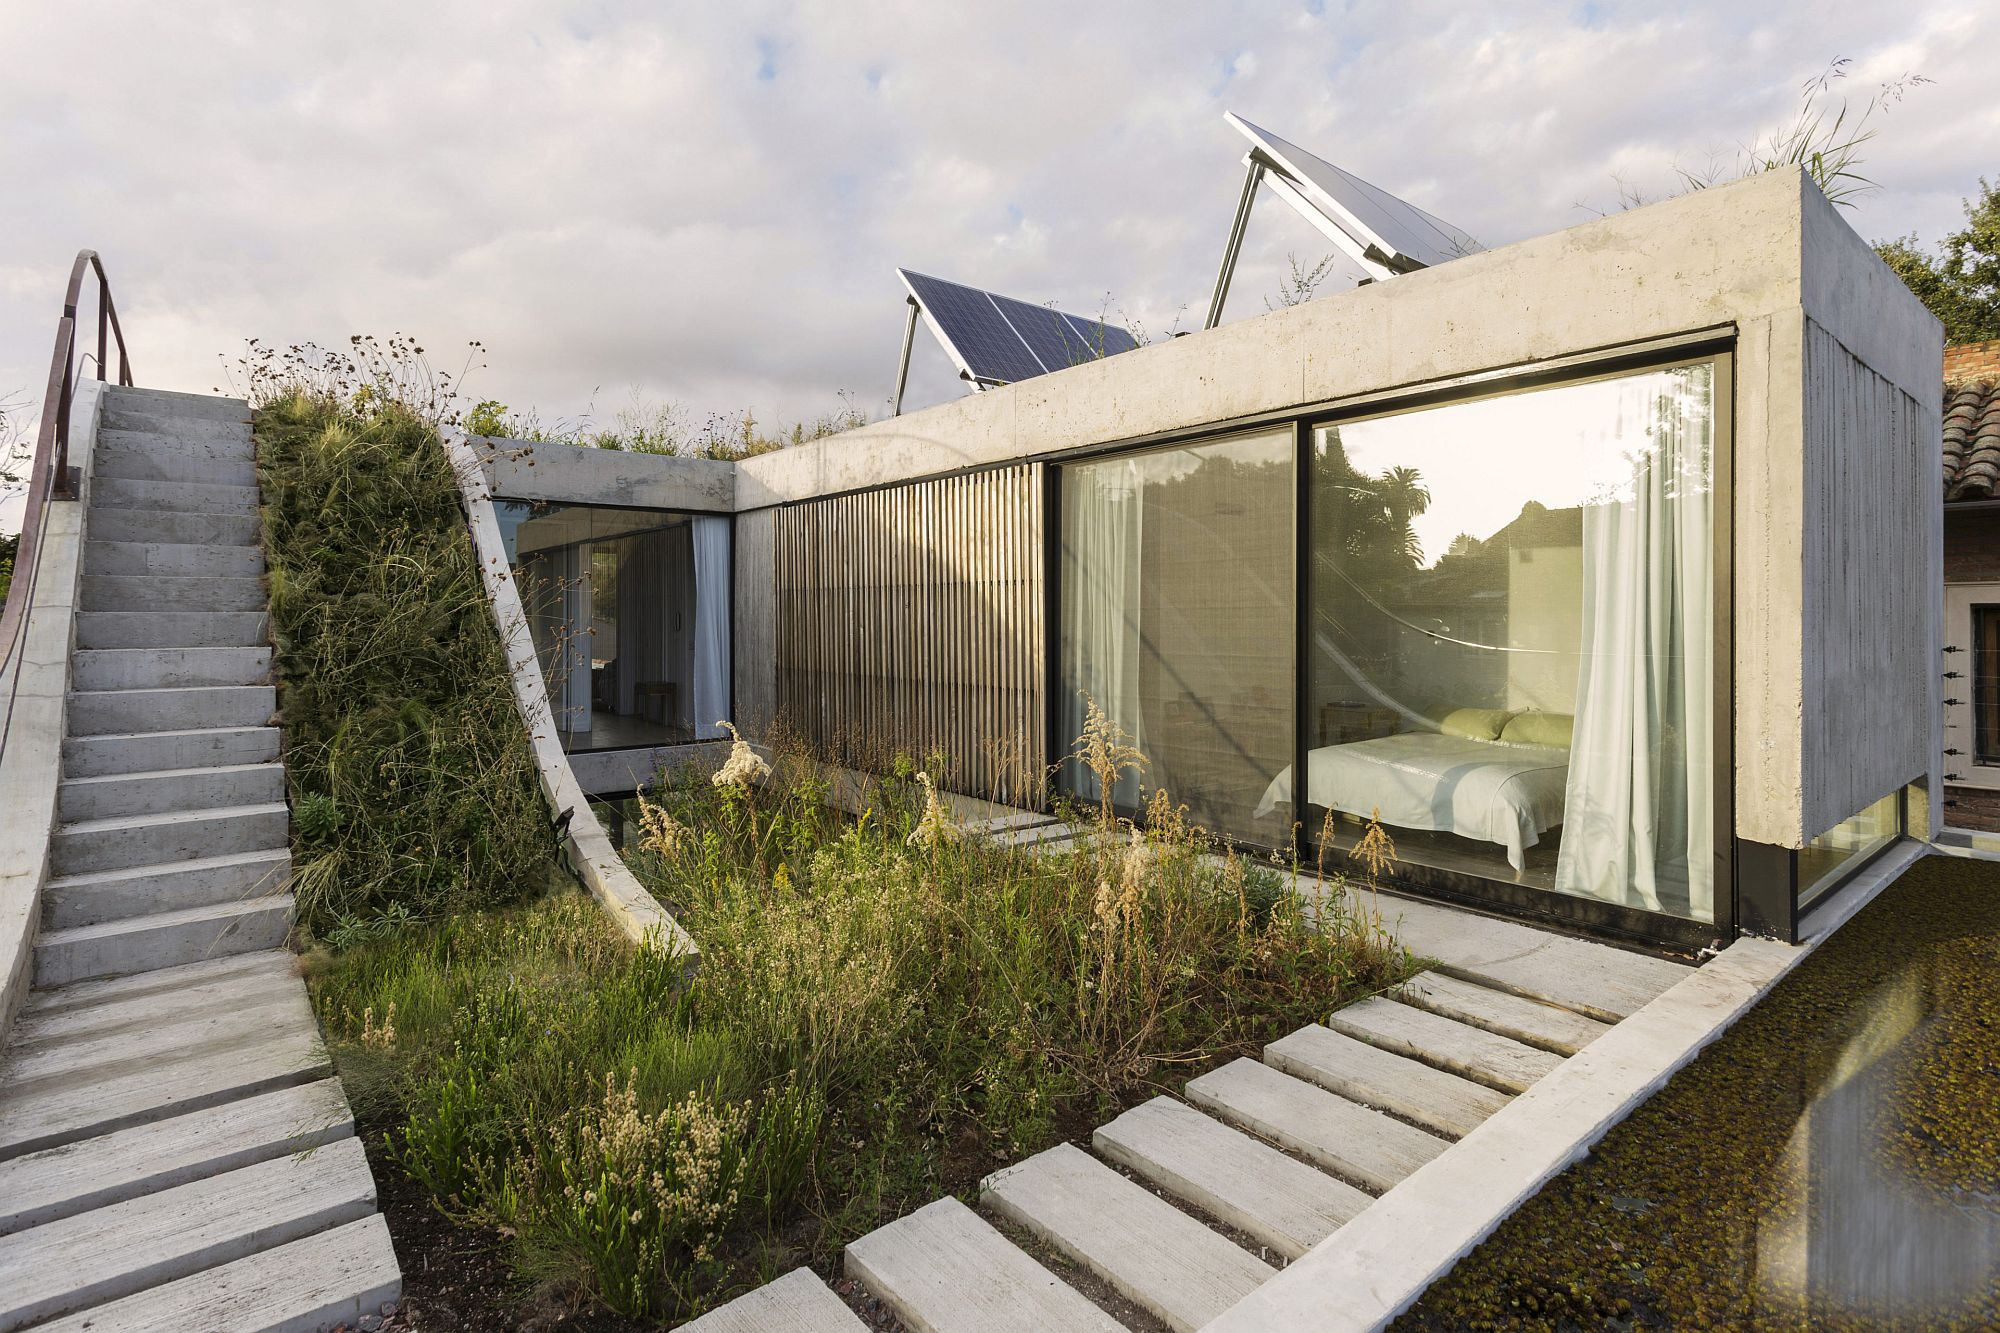 Multi-level garden across the house adds eco-friendly appeal to the setting